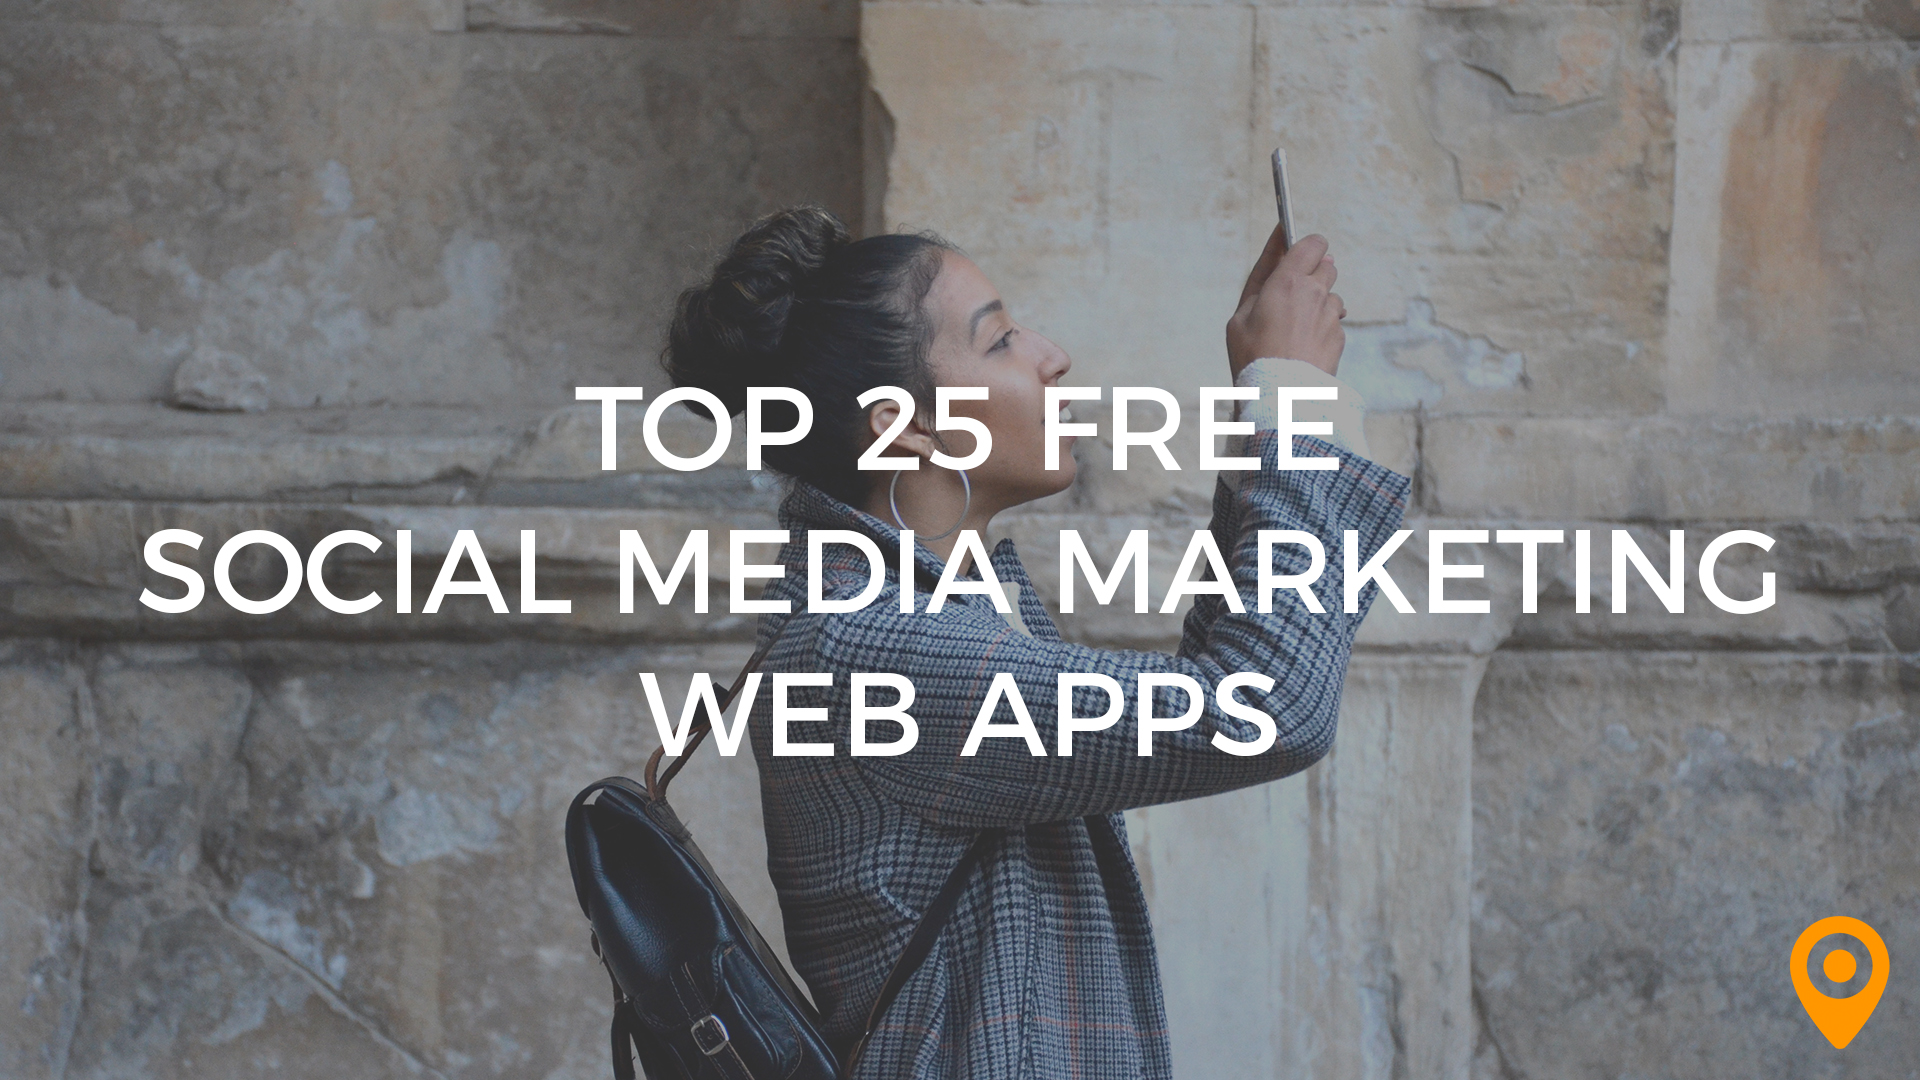 Top Free Social Media Marketing Web Apps